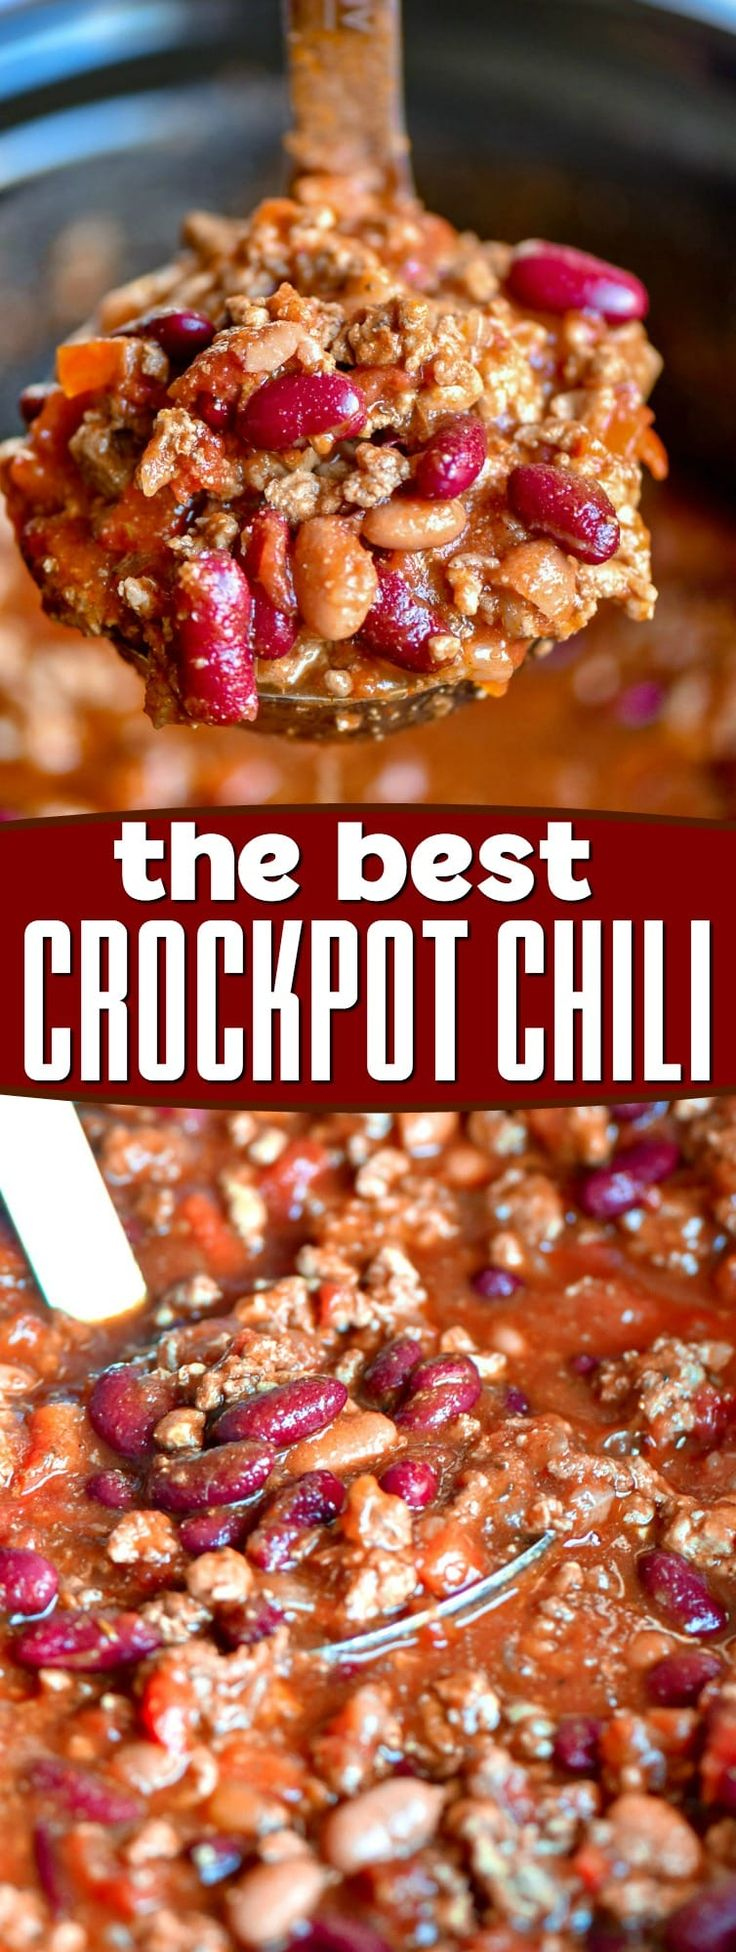 This superb Crockpot Chili recipe is scrumptious, hearty, and excellent for cold …